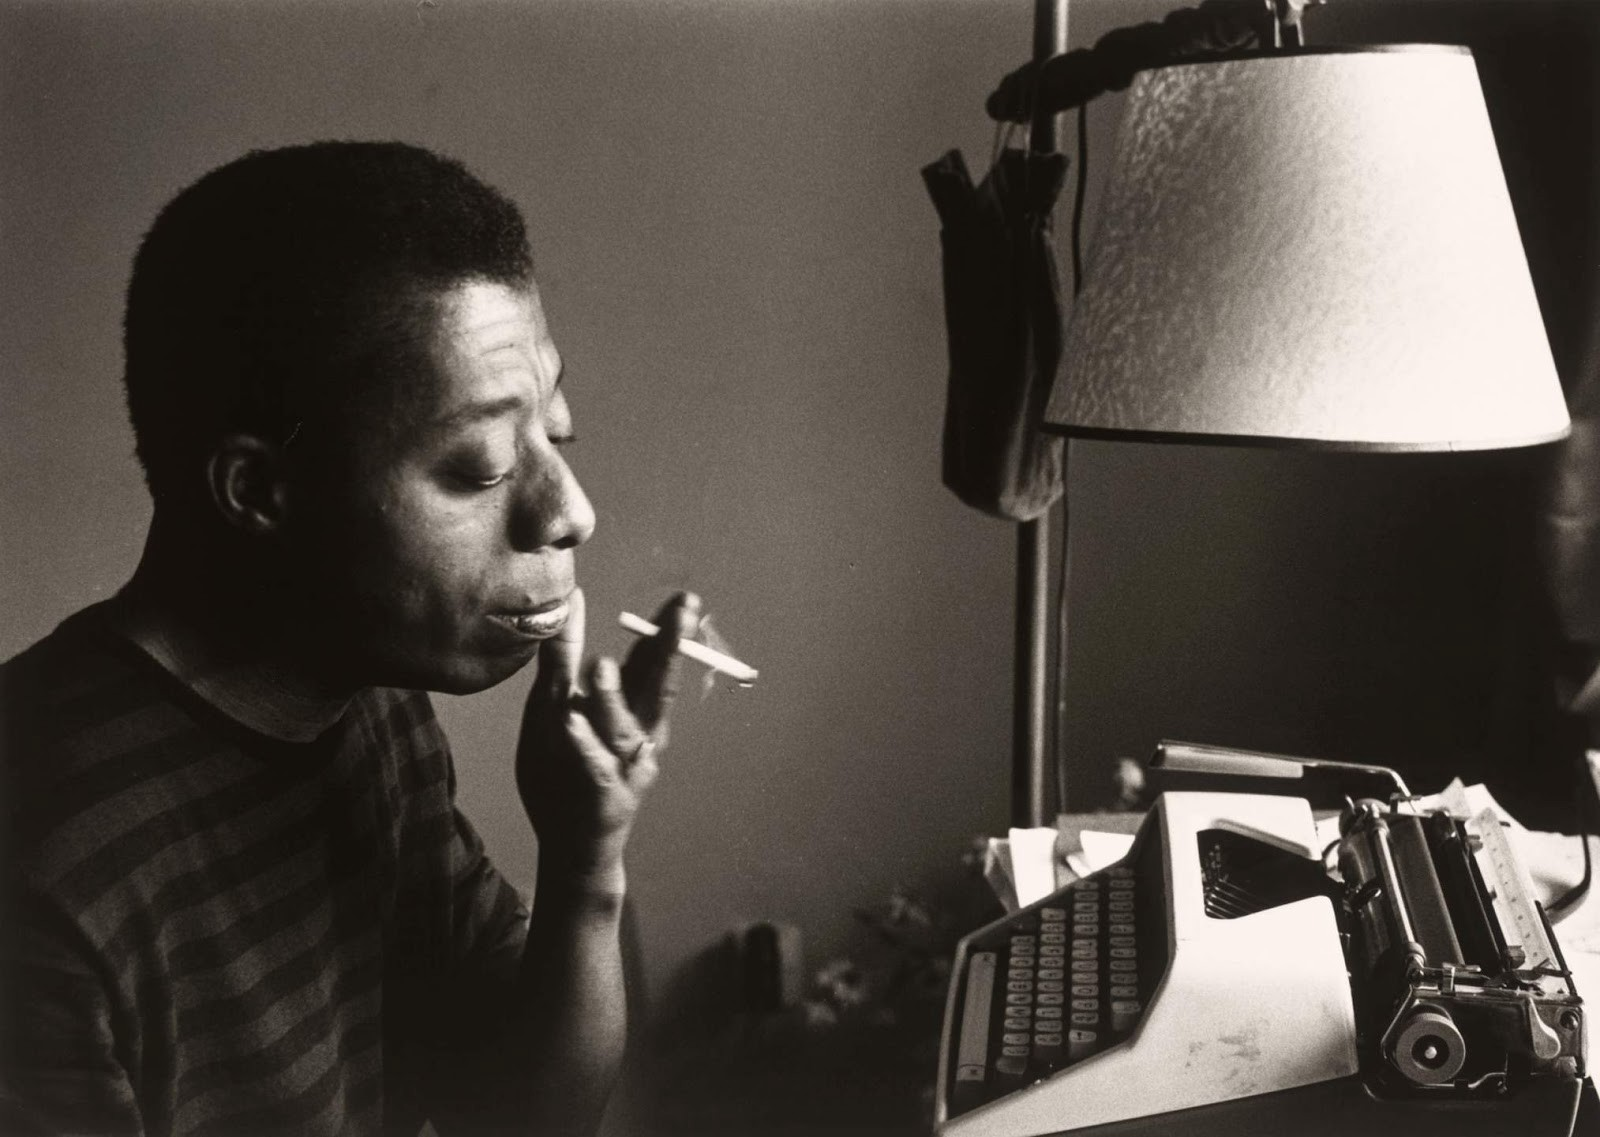 Faggot As Footnote: On James Baldwin, 'I Am Not Your Negro